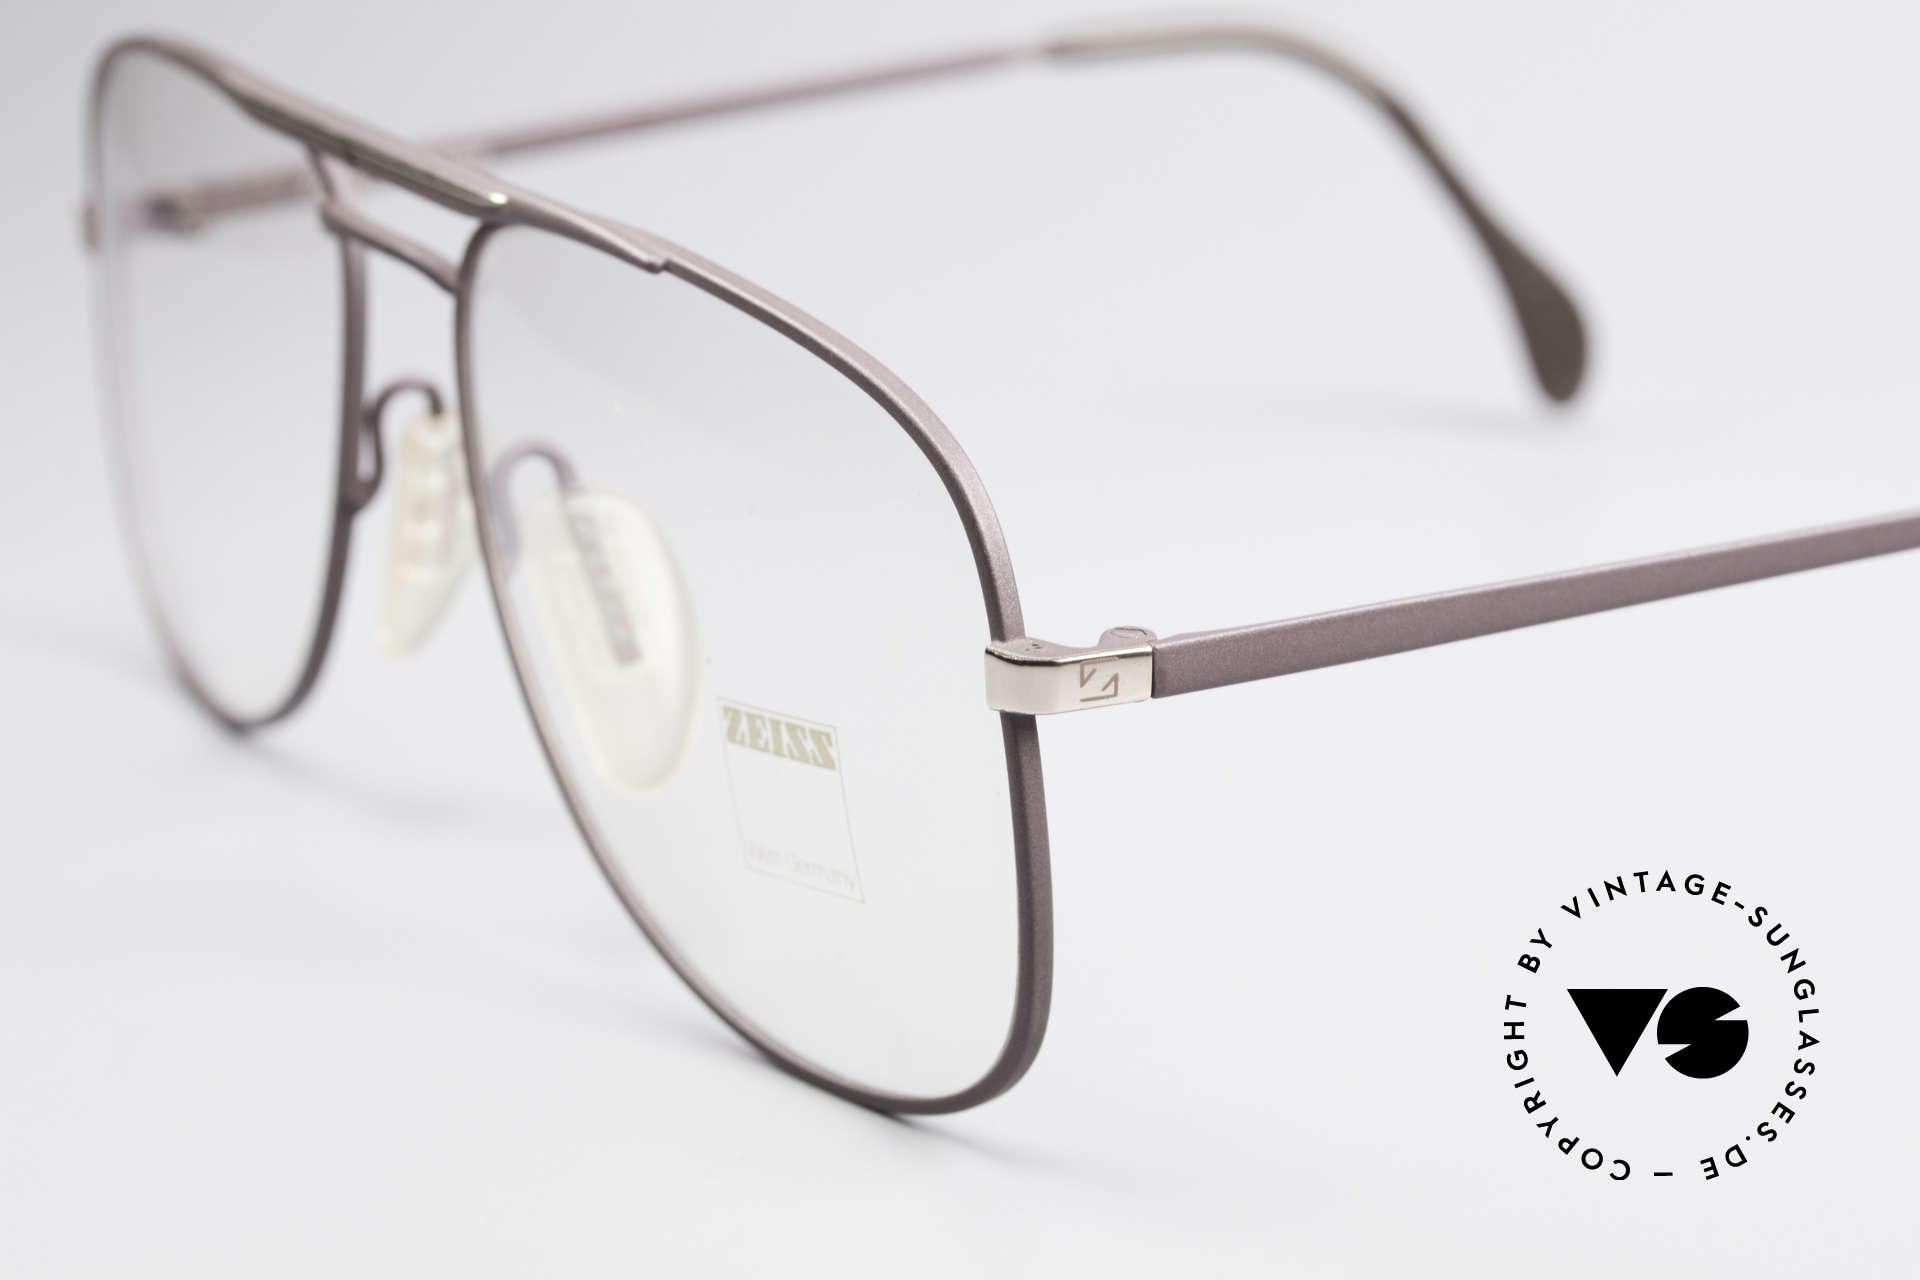 Zeiss 5886 Old 80's Eyeglass-Frame Men, unworn (like all our high-end Zeiss vintage eyewear), Made for Men